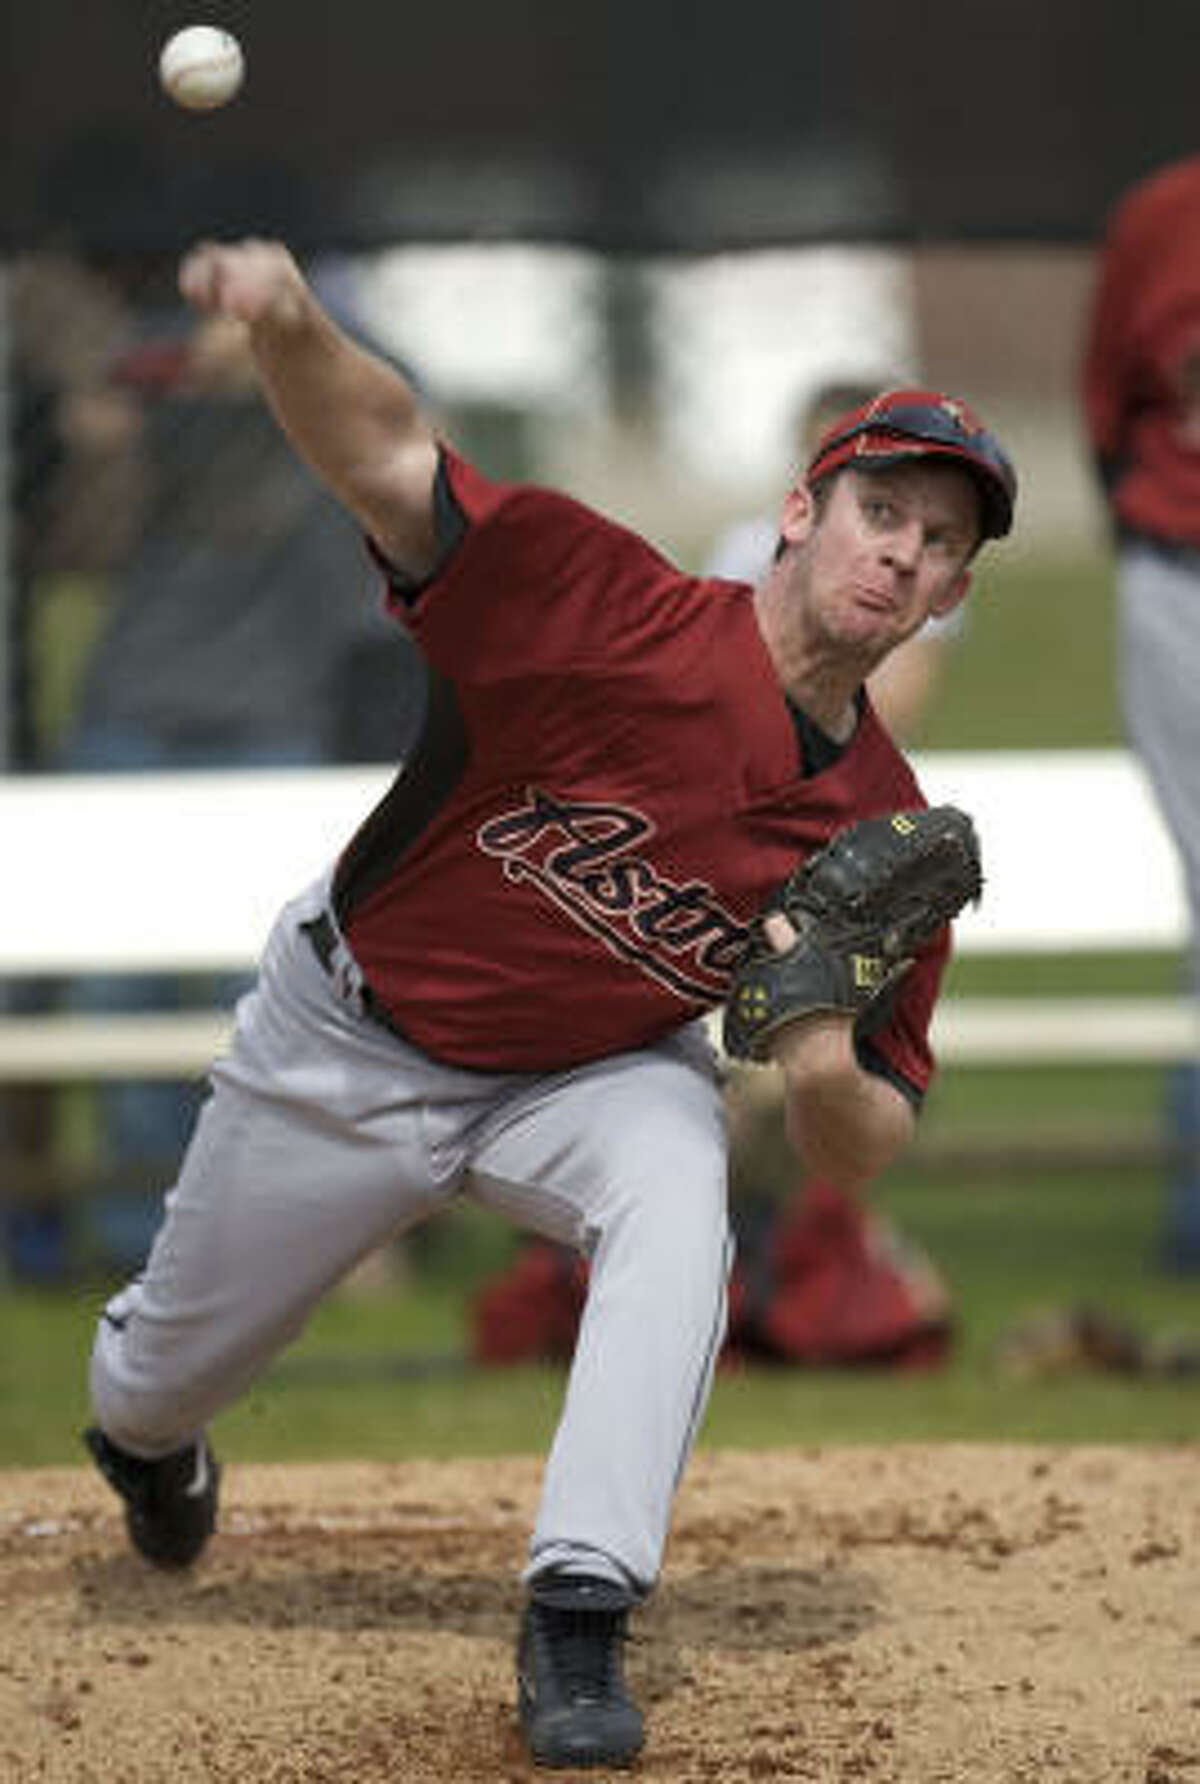 Roy Oswalt tosses a pitch during a workout on the first day of spring training in Kissimmee, Fla.